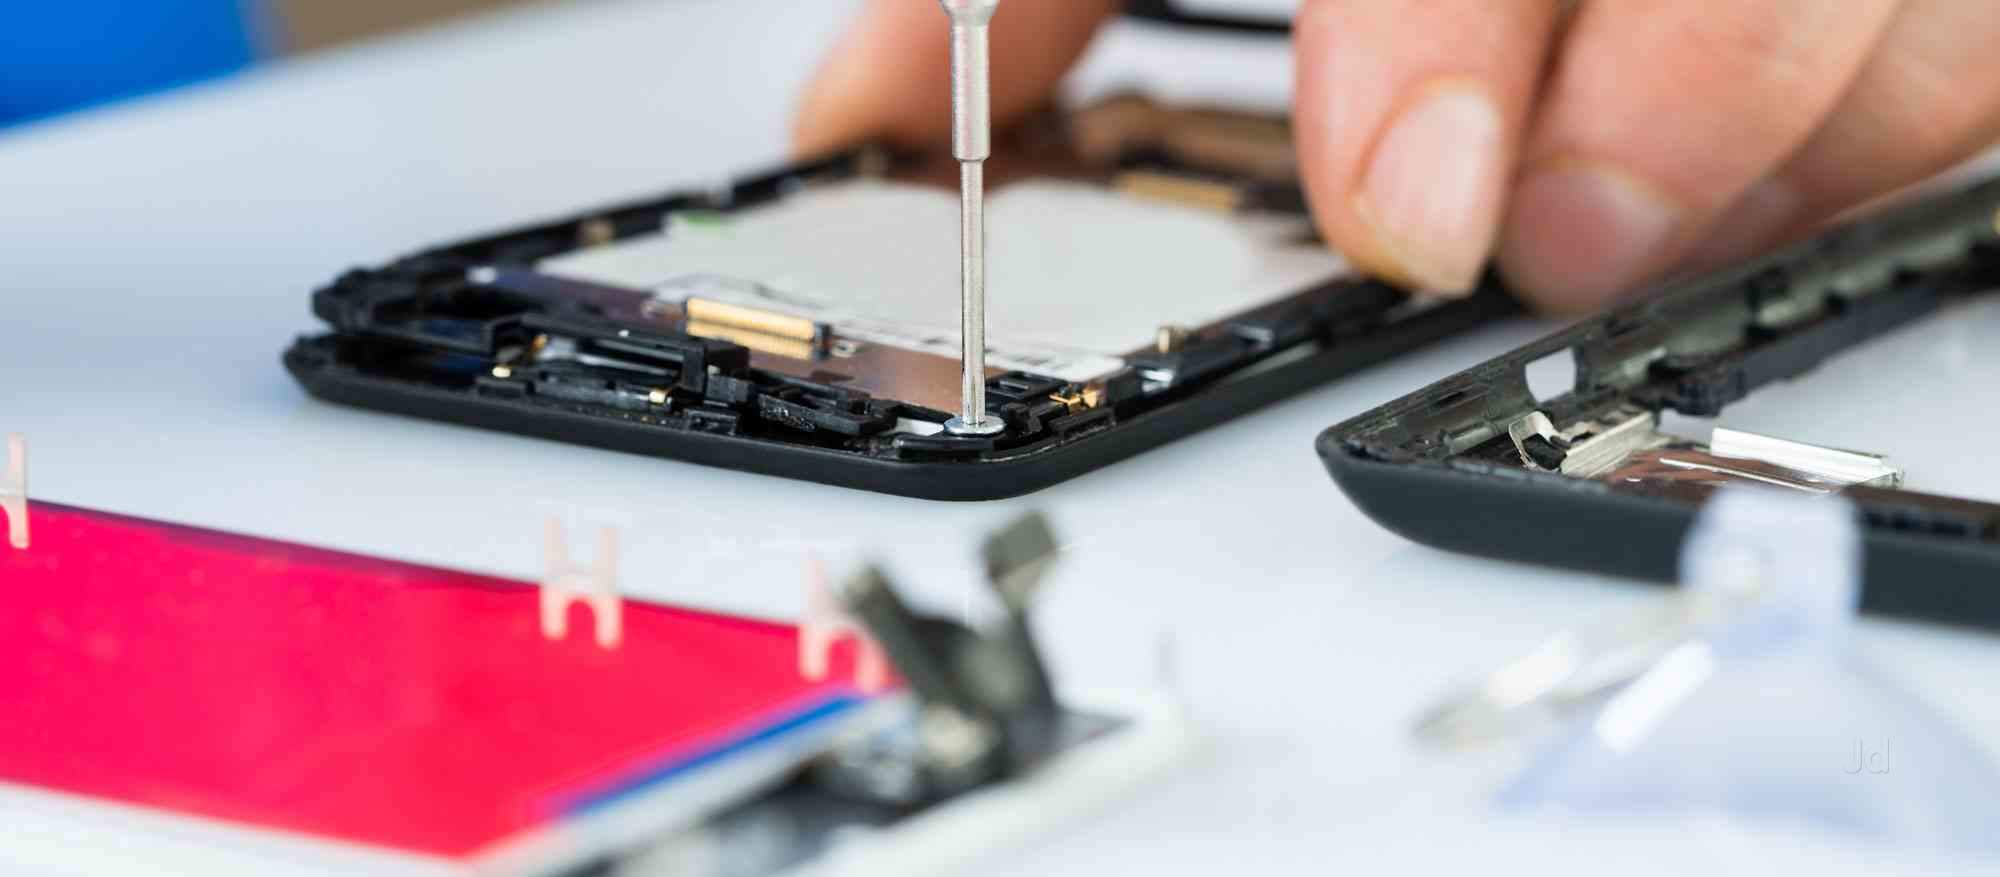 smartphone-repair-and-services